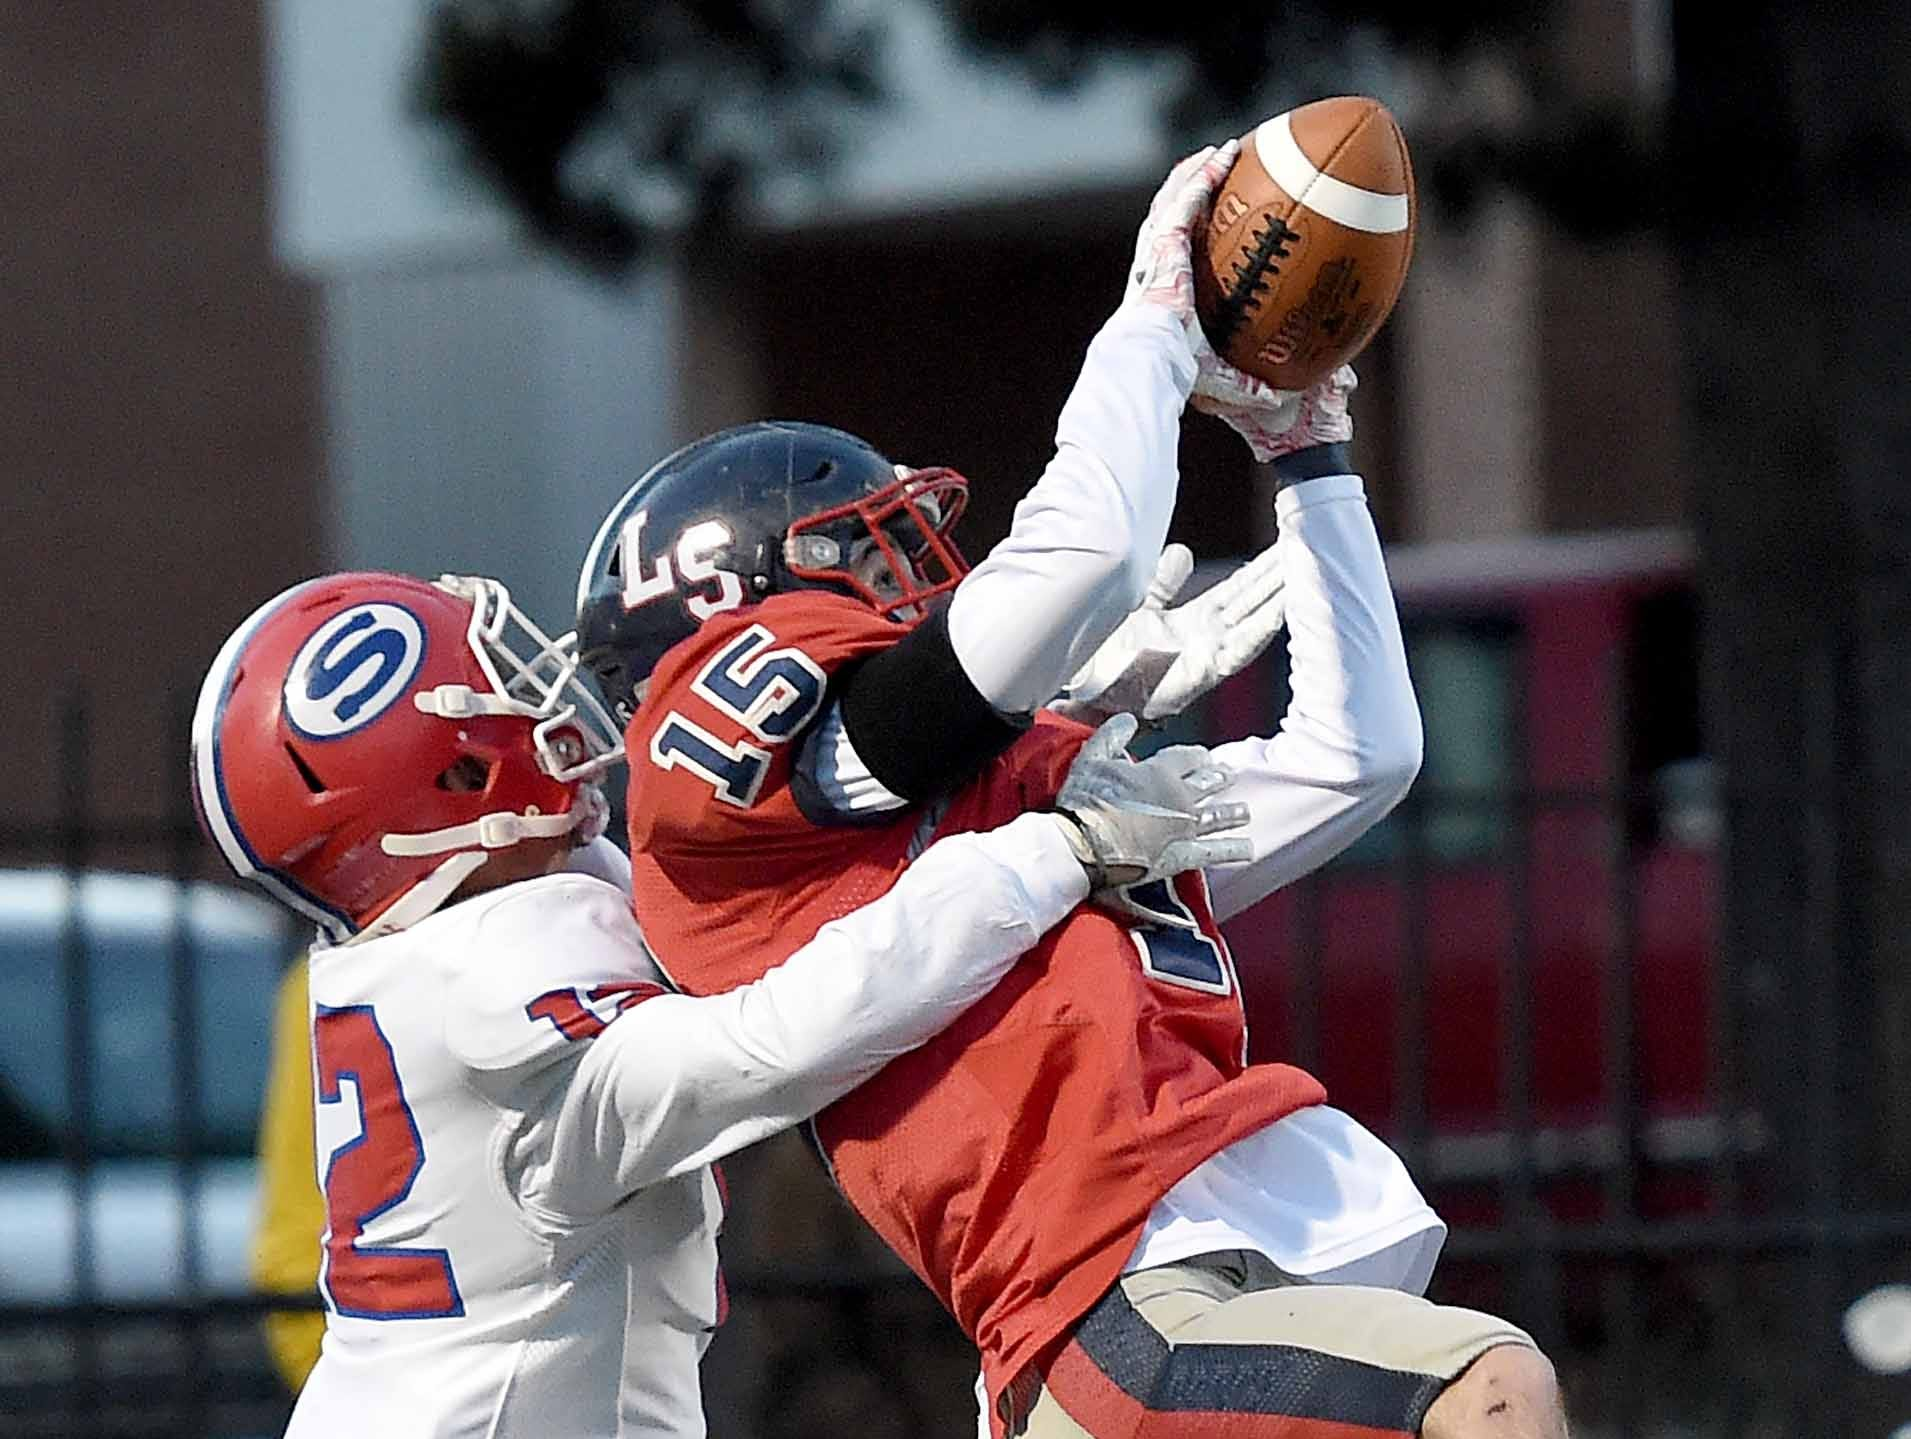 Lamar School's Brooks Brock (15) intercepts a pass for Simpson Academy's Bryce Caughman (12) in the end zone on Thursday, November 15, 2018, in the MAIS Class AAAA-D2 Football Championship at Jackson Academy in Jackson, Miss.